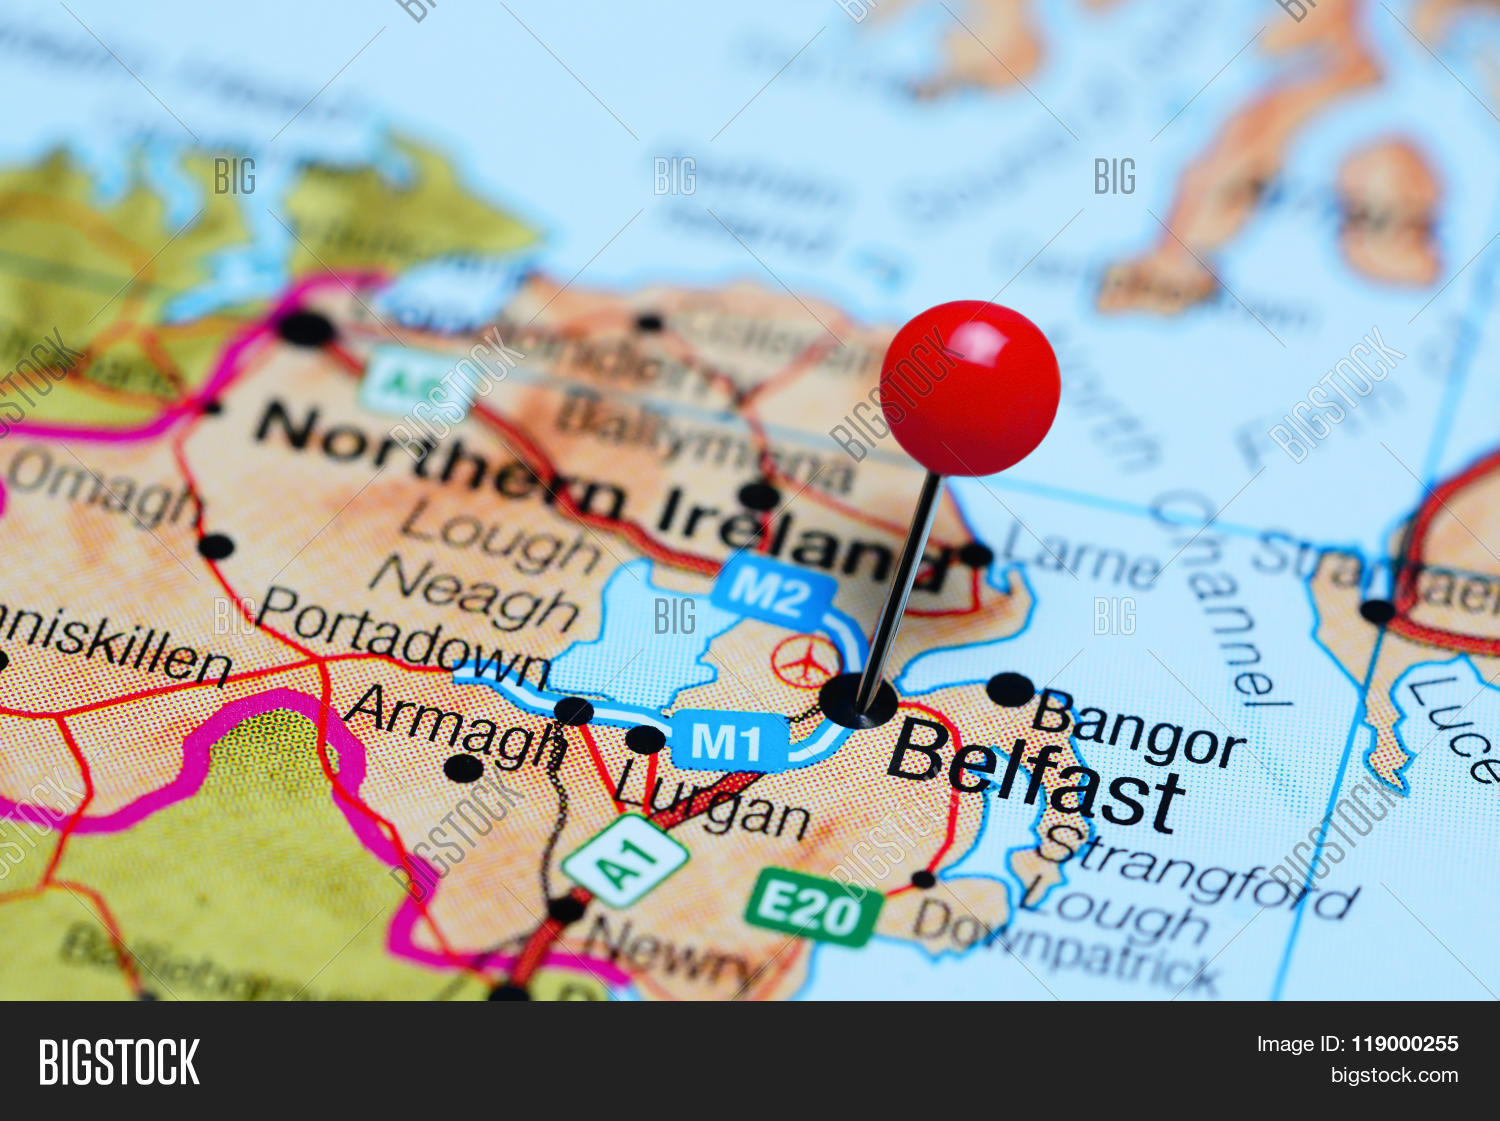 Belfast pinned on map northern image photo bigstock belfast pinned on a map of northern ireland gumiabroncs Images